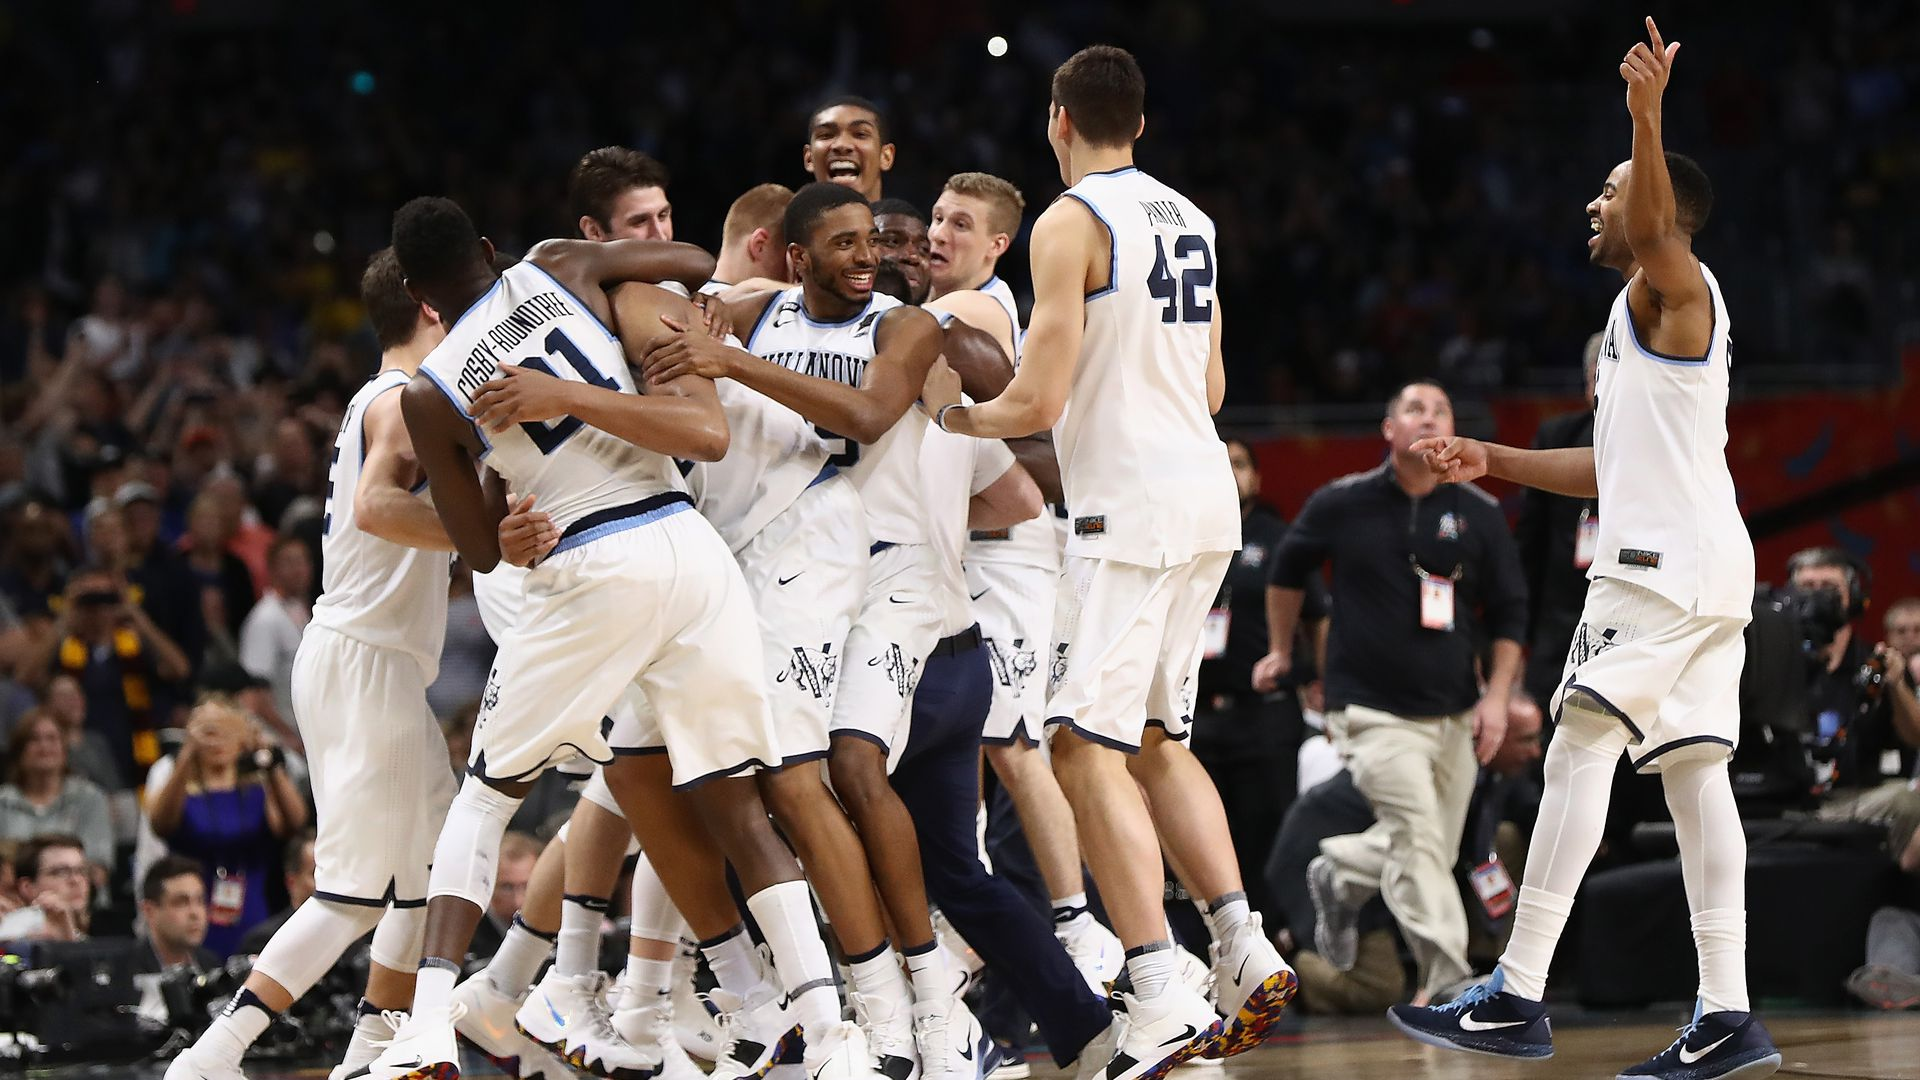 The Villanova Wildcats celebrate after defeating the Michigan Wolverines